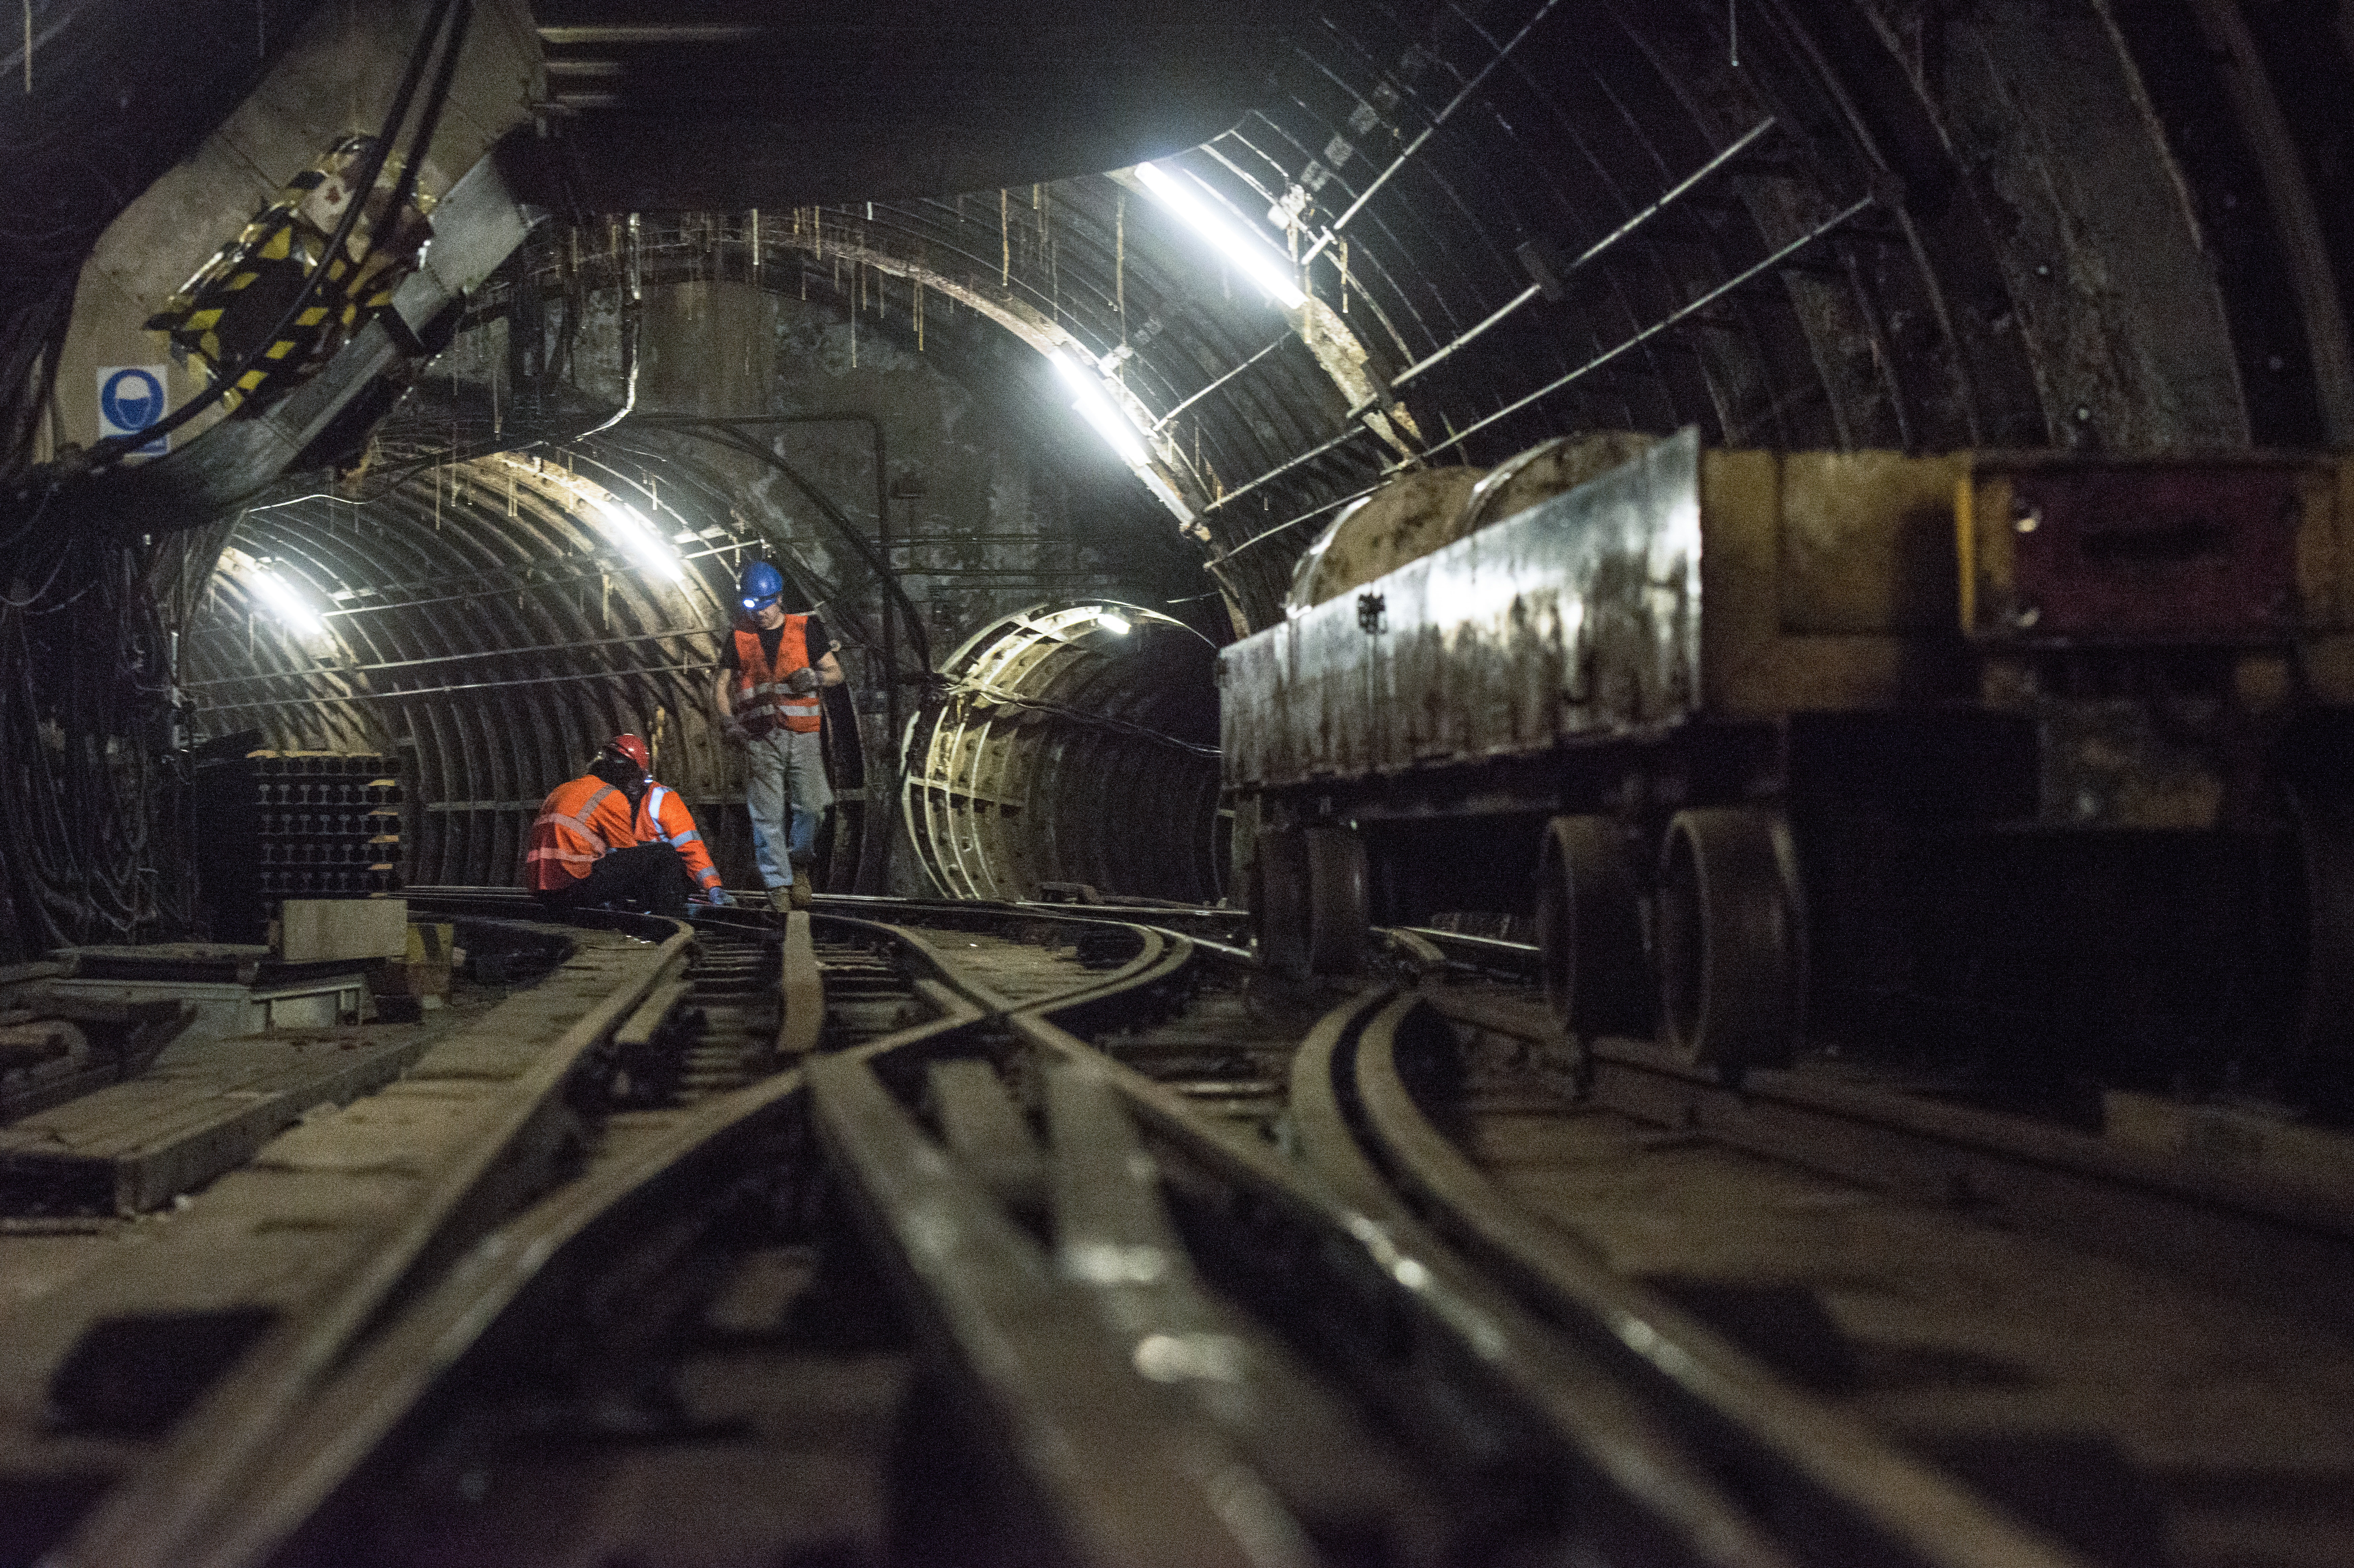 Workers sit on the underground tracks of the Mail Rail, the old rail system that transported mail between sorting offices, as work starts to turn it into a heritage attraction at the new Postal Museum in London